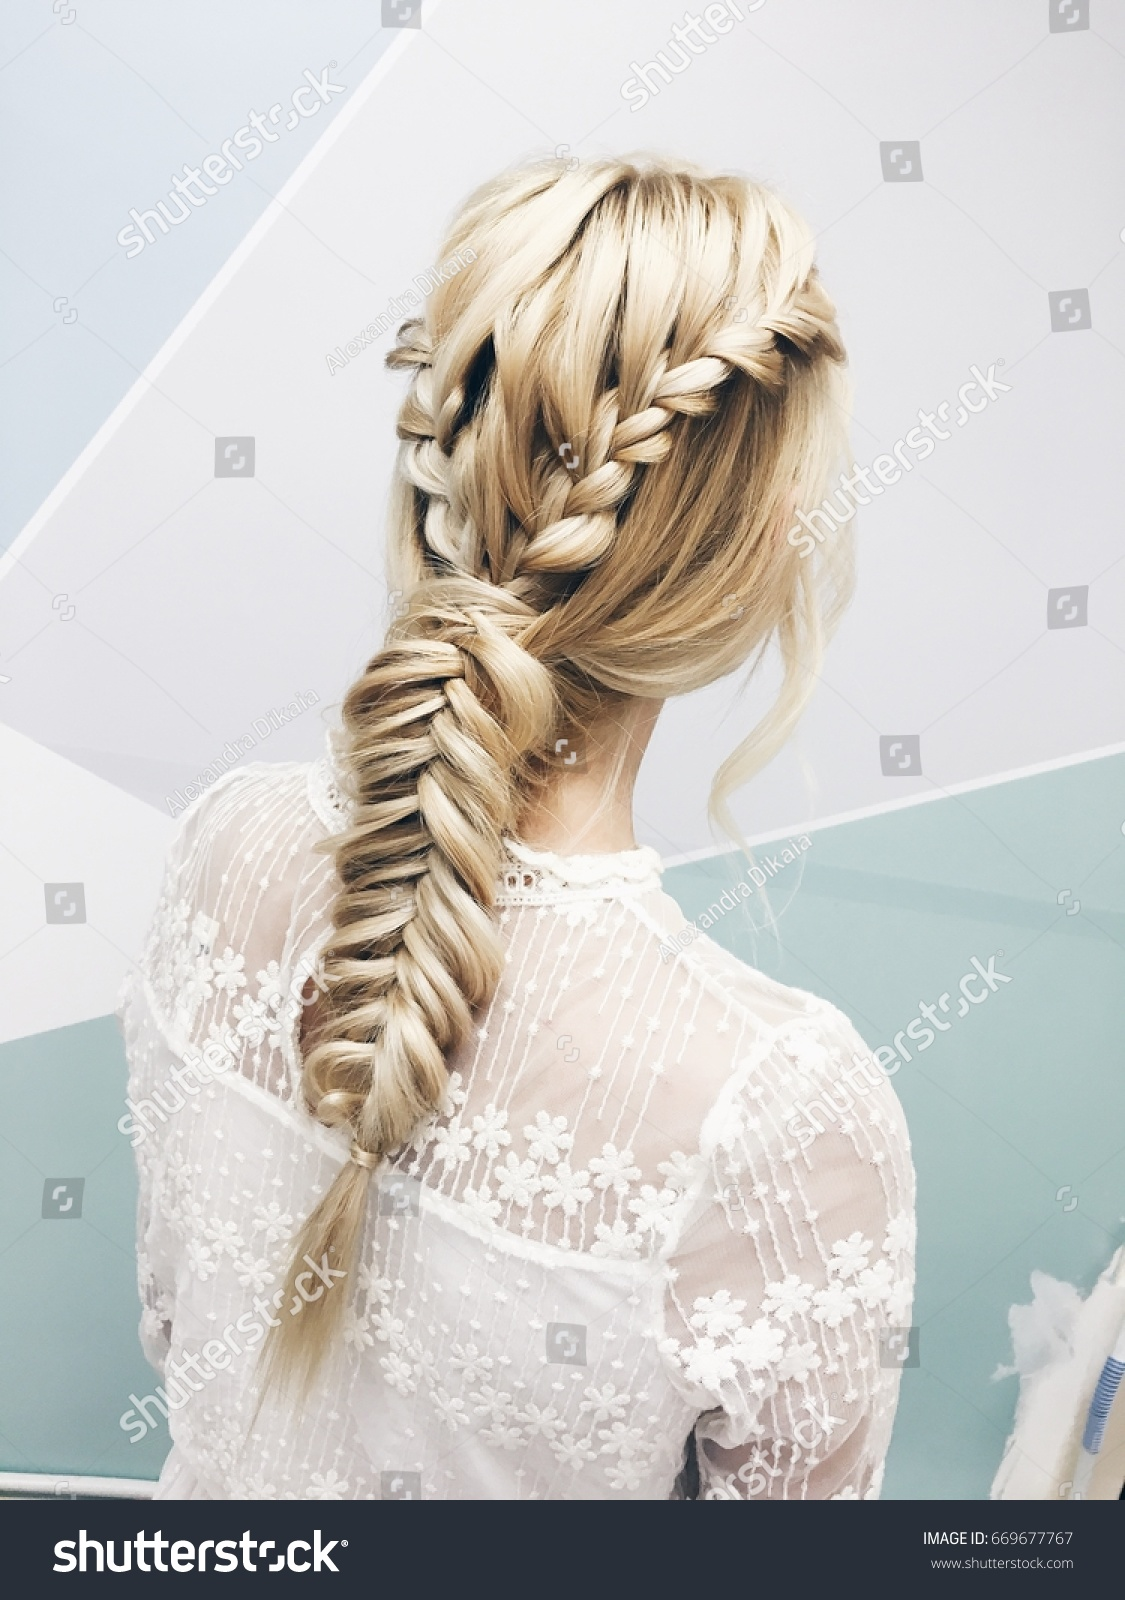 Stylish Hairstyle Closeup Blonde Girl White Stock Photo (Royalty ...